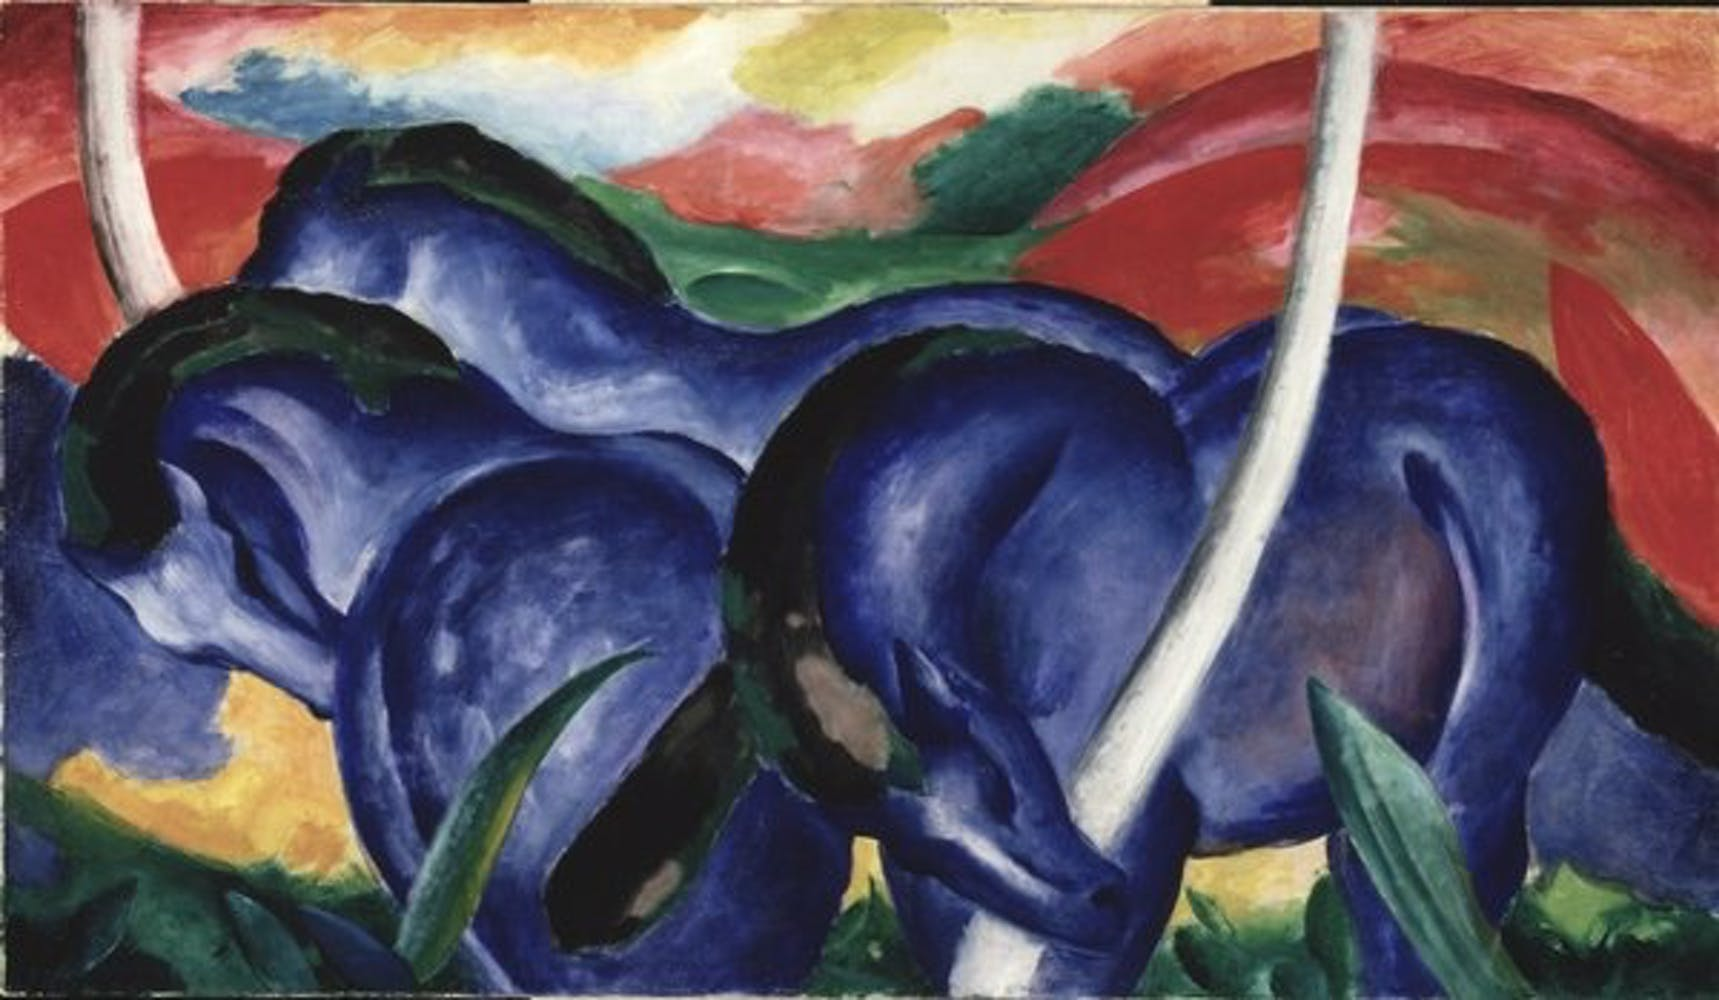 Franz Marc, Die grossen blauen Pferde (The Large Blue Horses), 1911